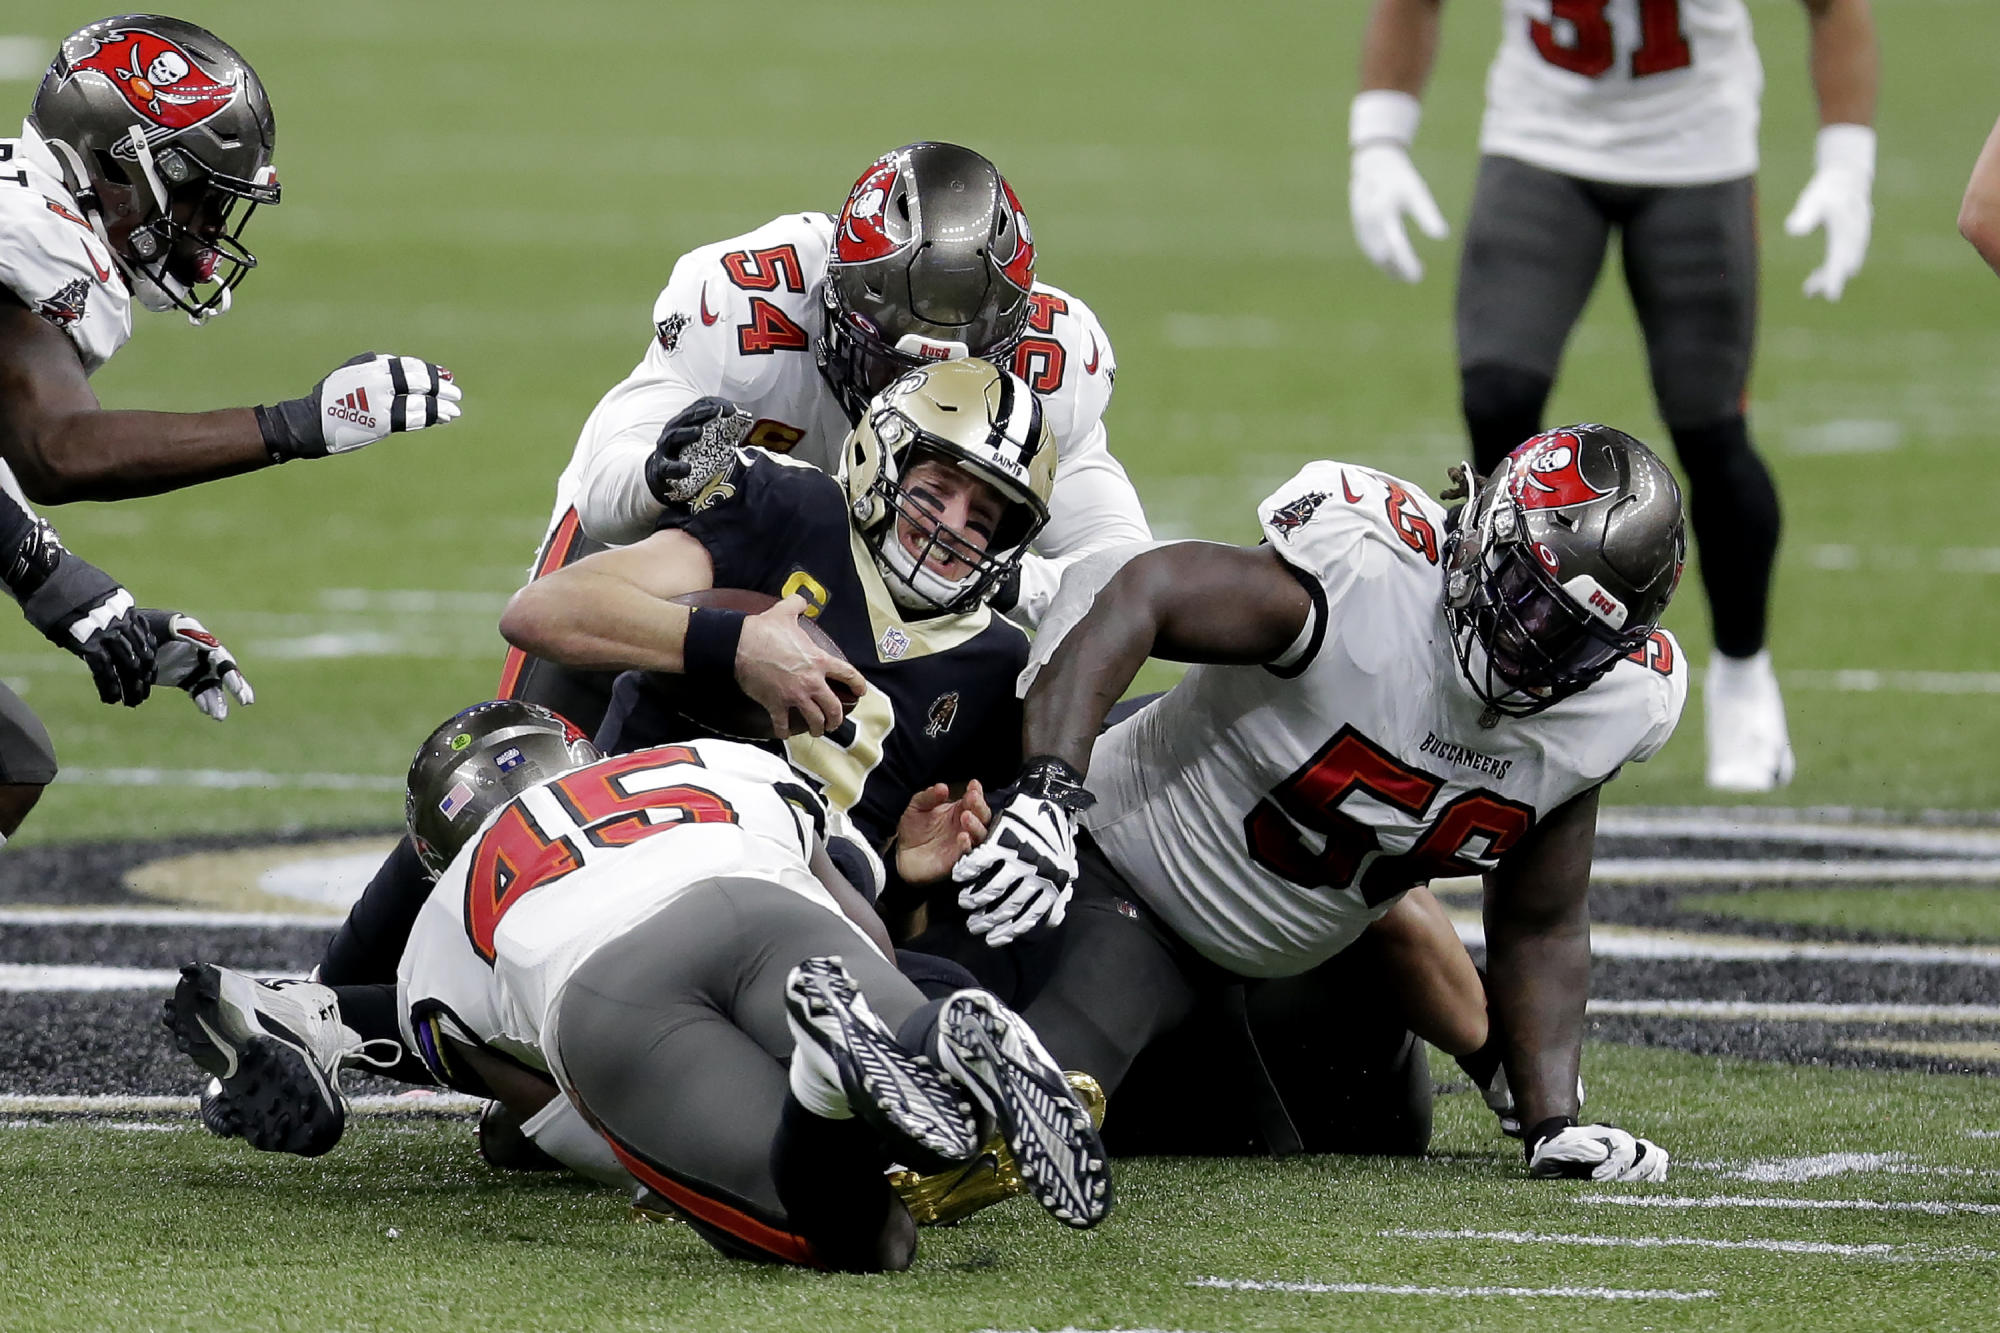 Drew Brees' career possibly ends with more Saints playoff sorrow as Tom Brady and Bucs move on